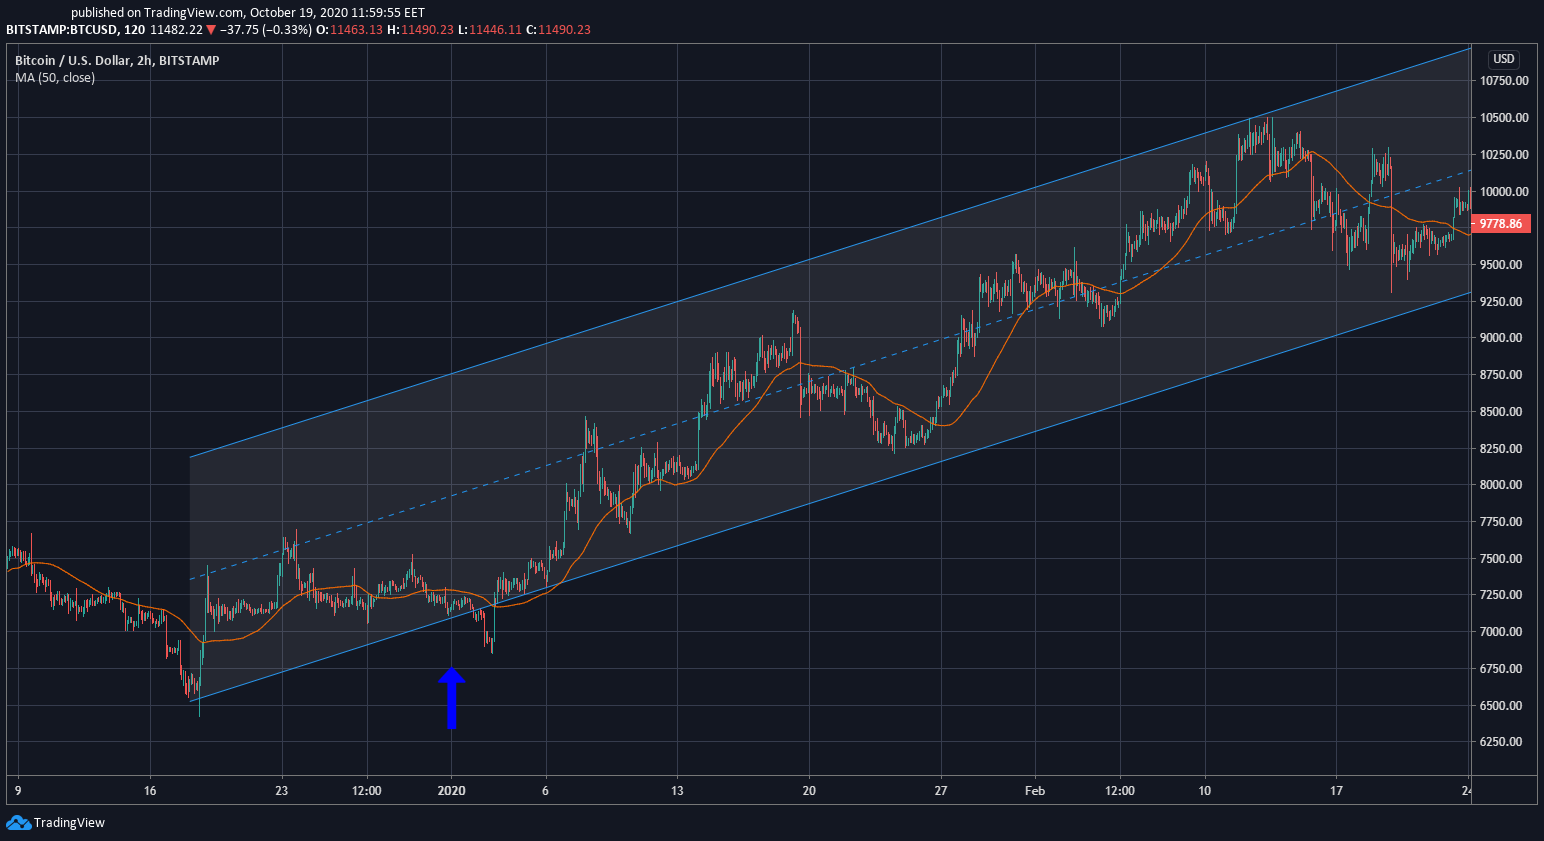 BTC/USD 2H price chart at the start of 2020